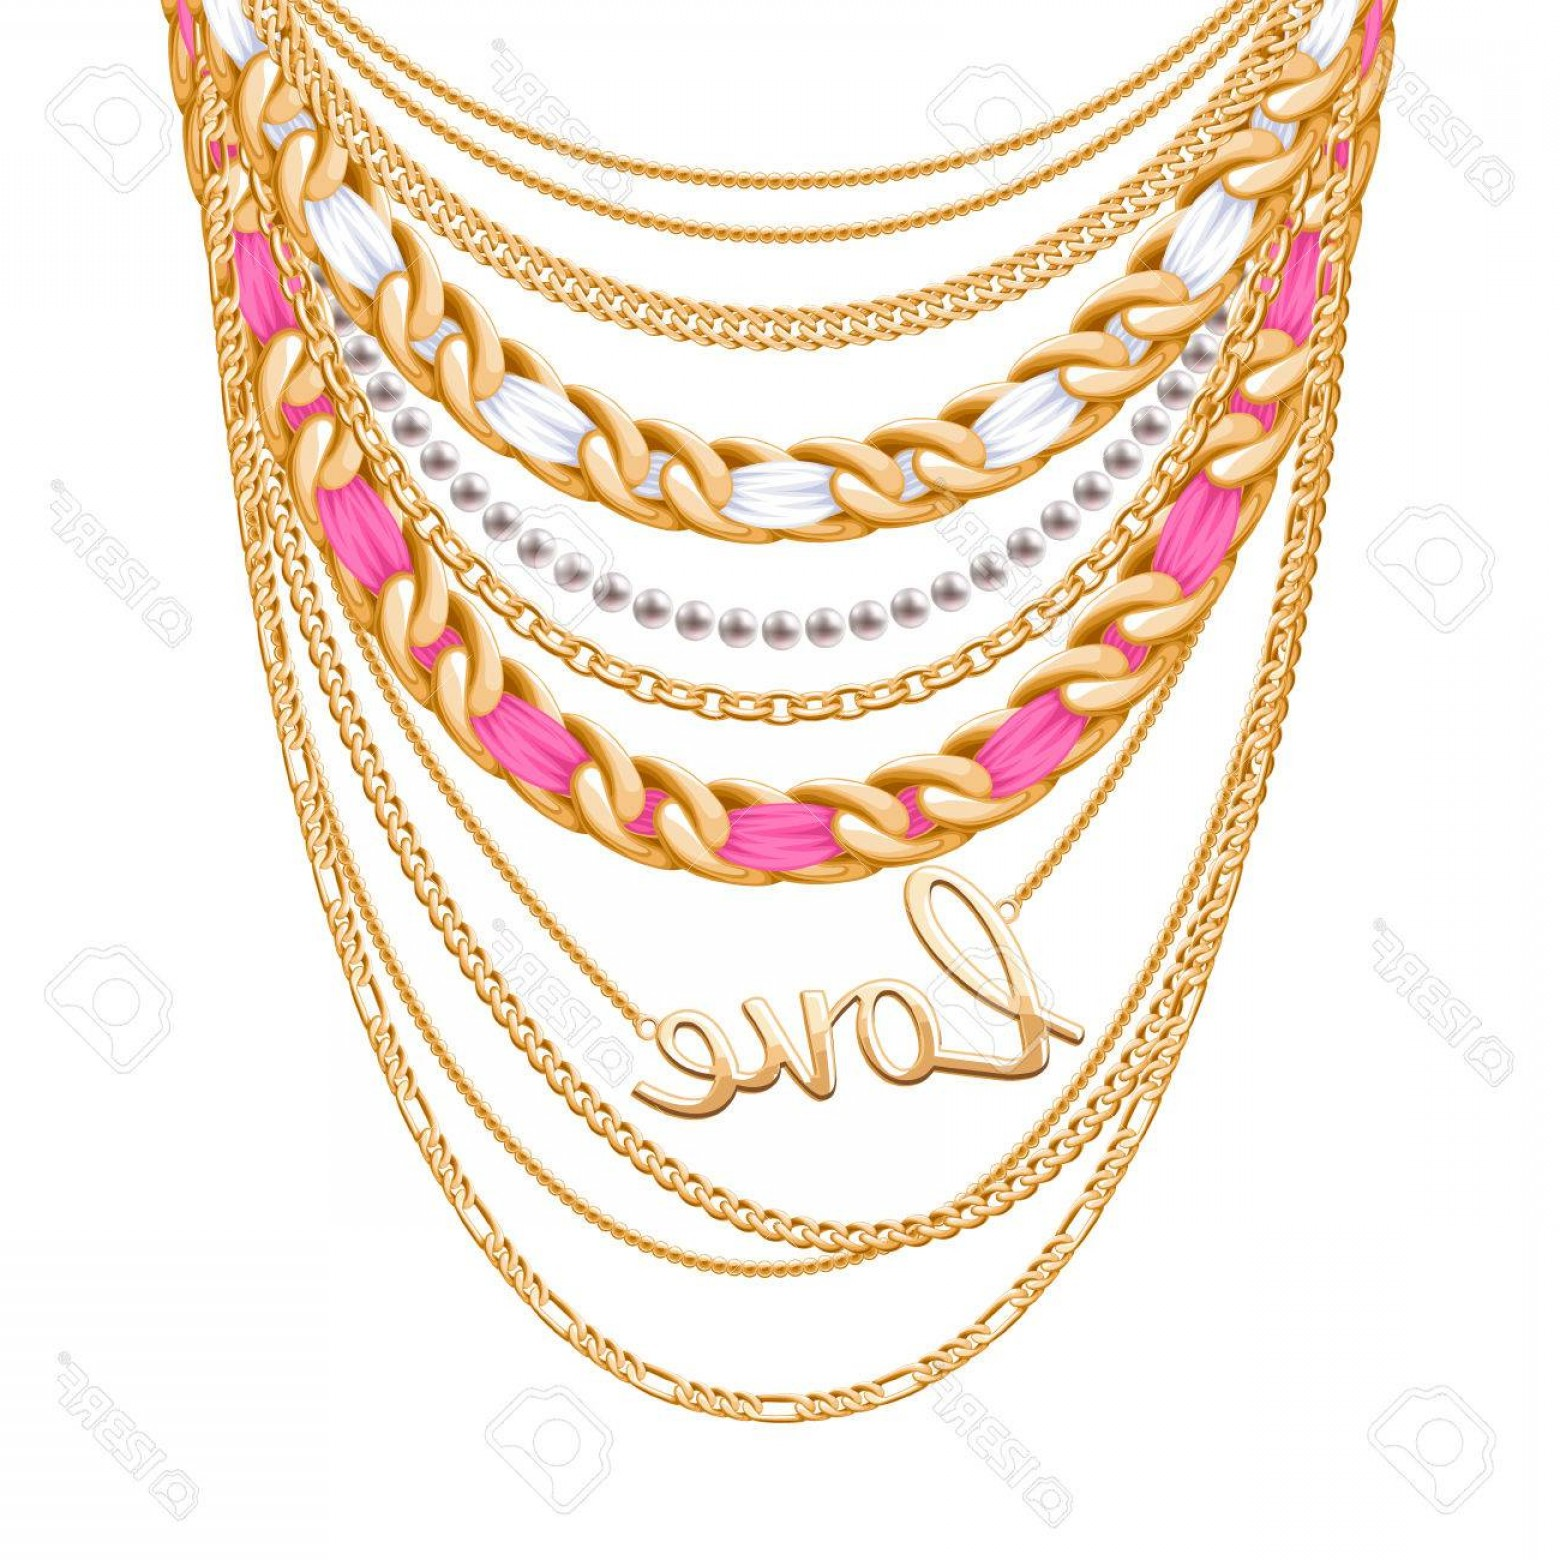 Necklace Vector Chain Grapicts: Photostock Vector Many Chains Golden Metallic And Pearls Necklace Ribbons Wrapped Love Word Pendant Personal Fashion A